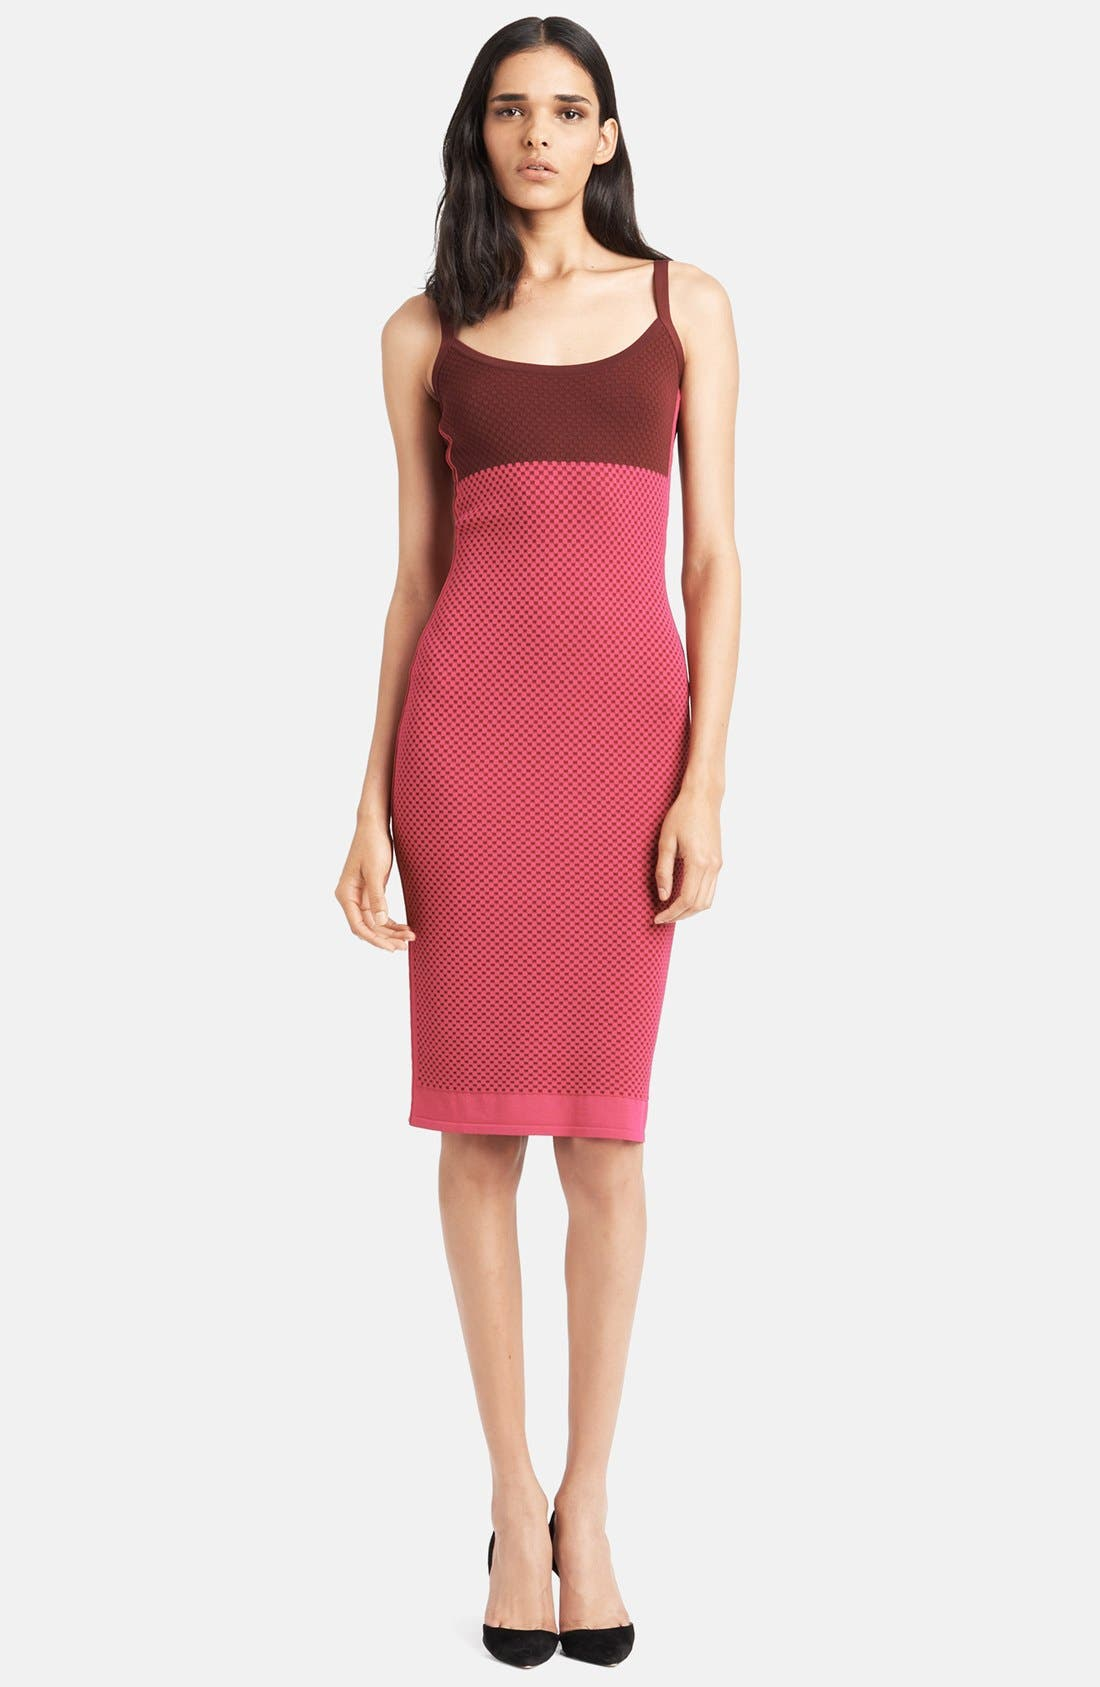 Alternate Image 1 Selected - Narciso Rodriguez Dress & Accessories